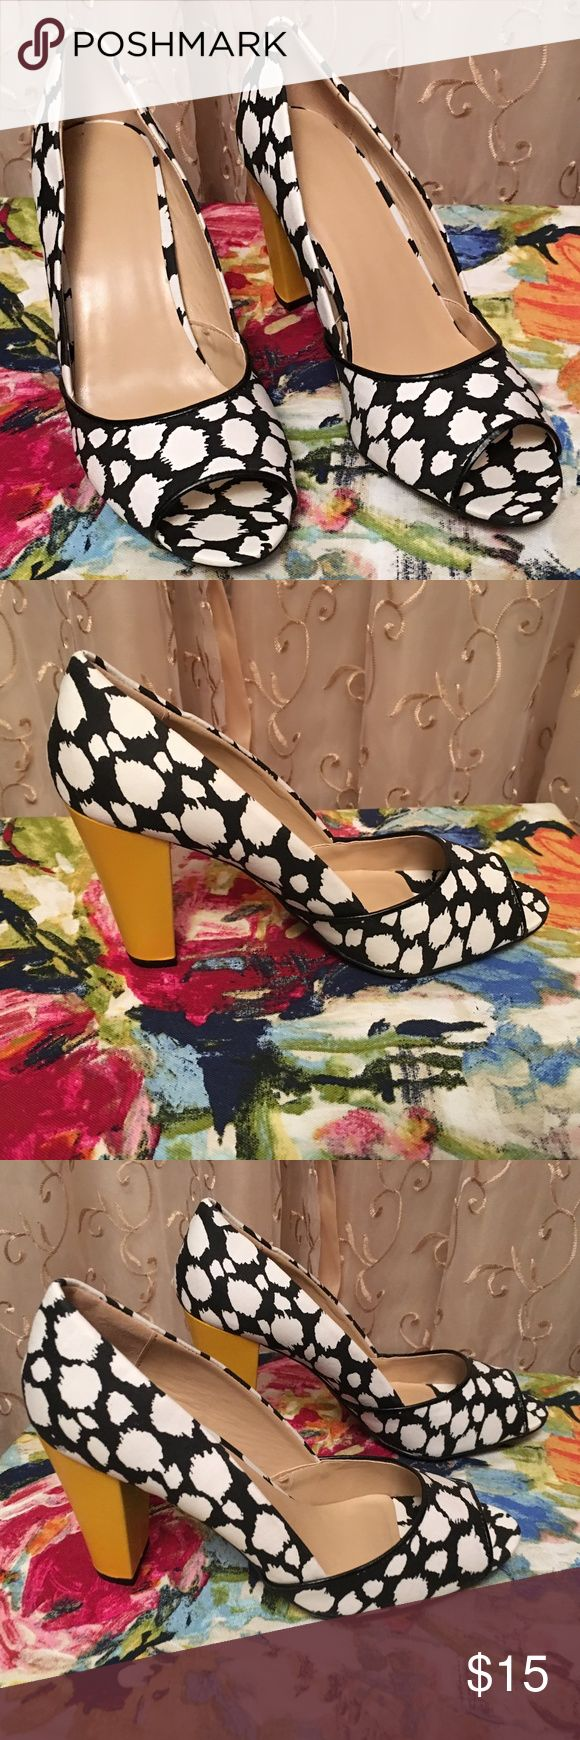 """Avon Blurry Dot Fashion Pumps Blurry Dot Fashion Pumps. Mod peep toe pump in graphic black and white with bright yellow heel for a pop of color. Features: Peep Toe; Upper is black with white dots that have blurred lines; Heel is Chunky, solid yellow with black trim at bottom. Size 8. Bottom of soles are skid resistant; heel height 3 1/2"""" H. Materials: Fabric, PU (polyurethane), TPR (Thermal Plastic Rubber) New in original packaging. Item shown is the item you will receive. Stunning heels…"""